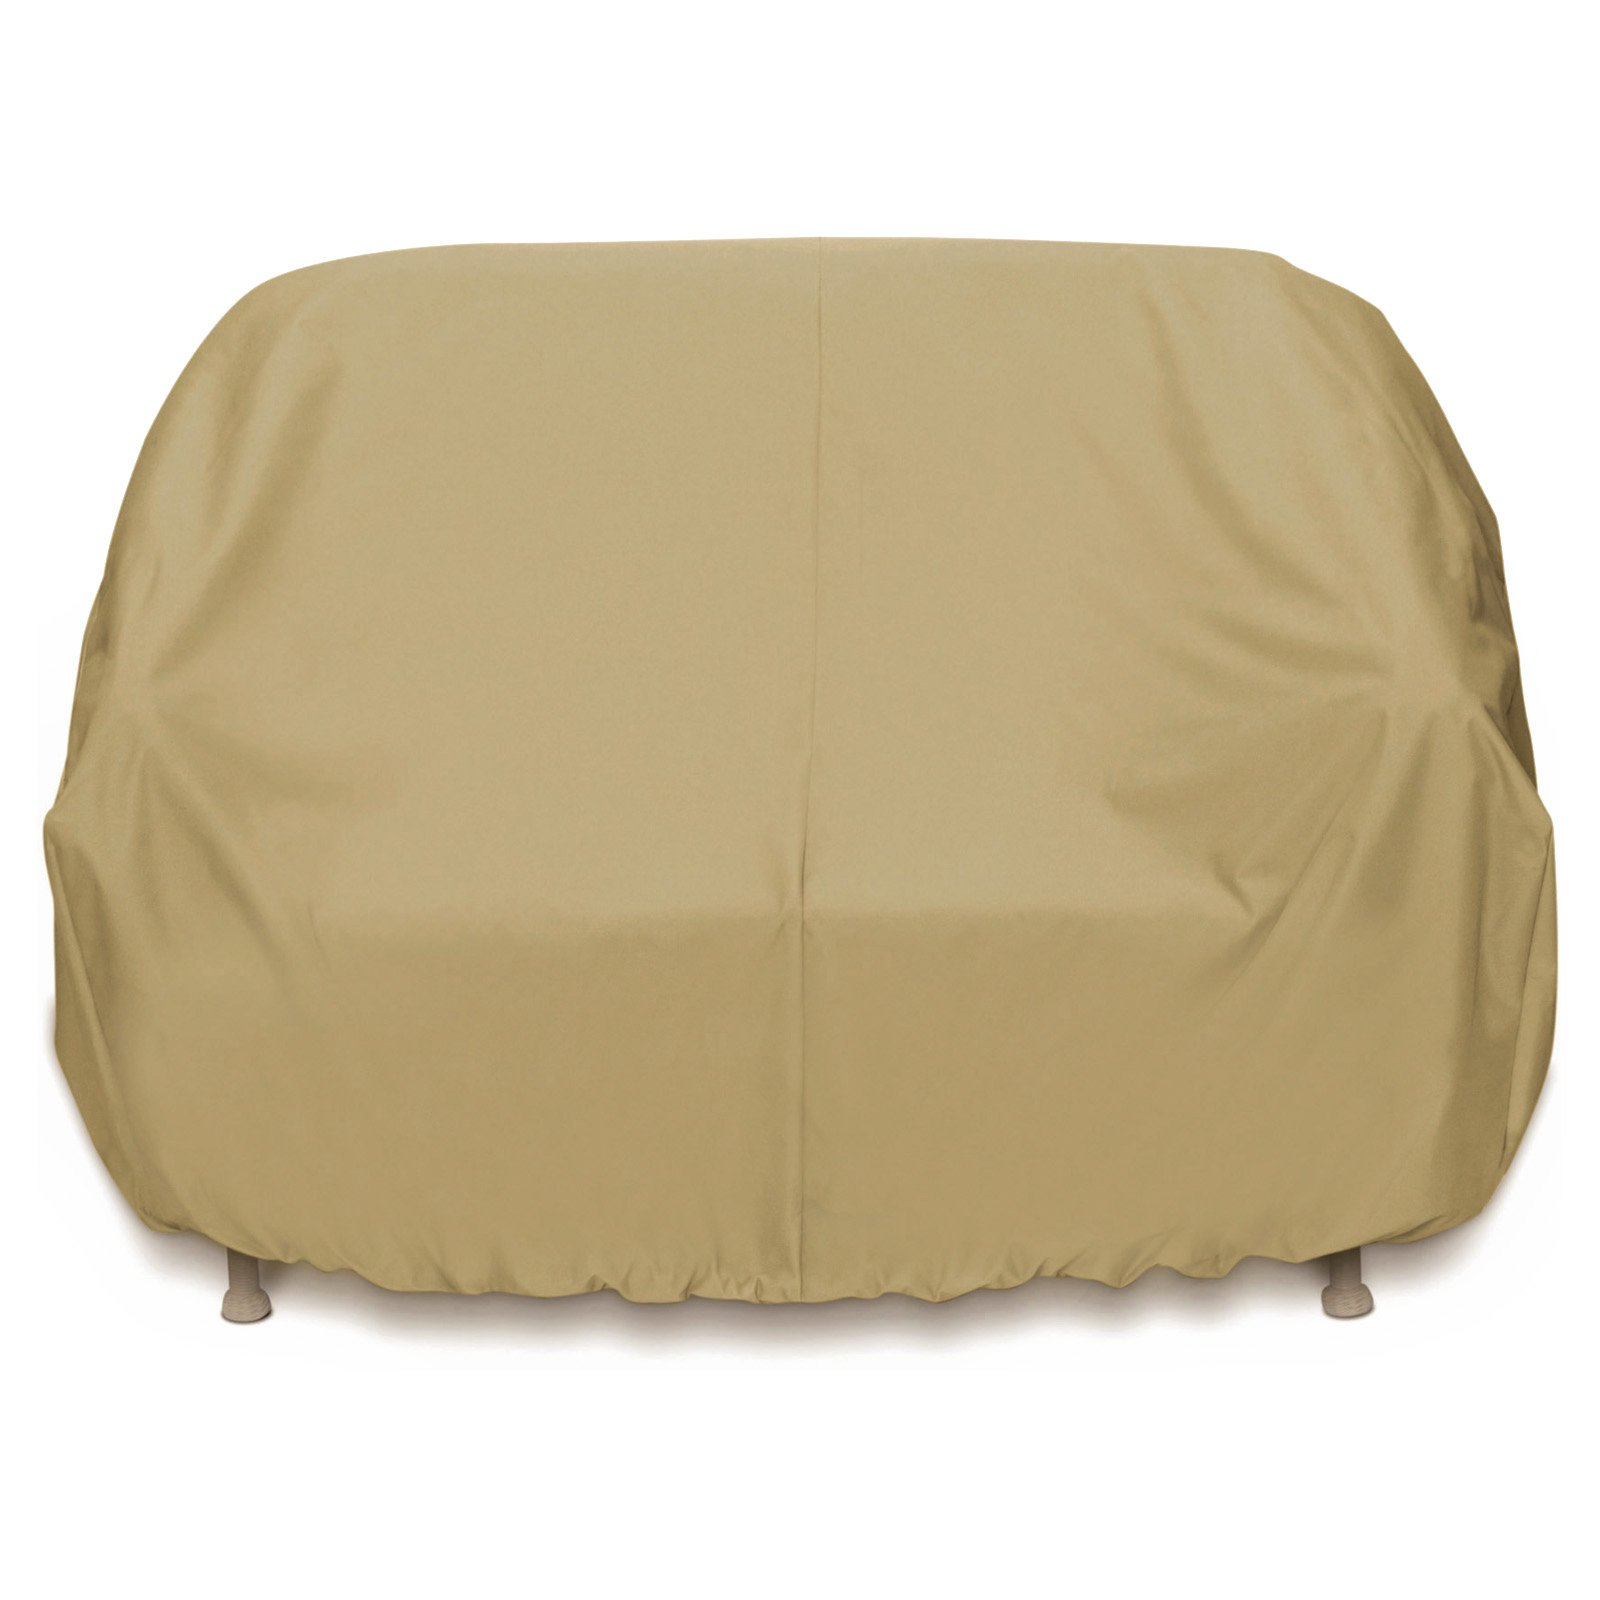 Two Dogs Designs 2D-PF88365 3-Seat Sofa Cover Khaki by Smart Living